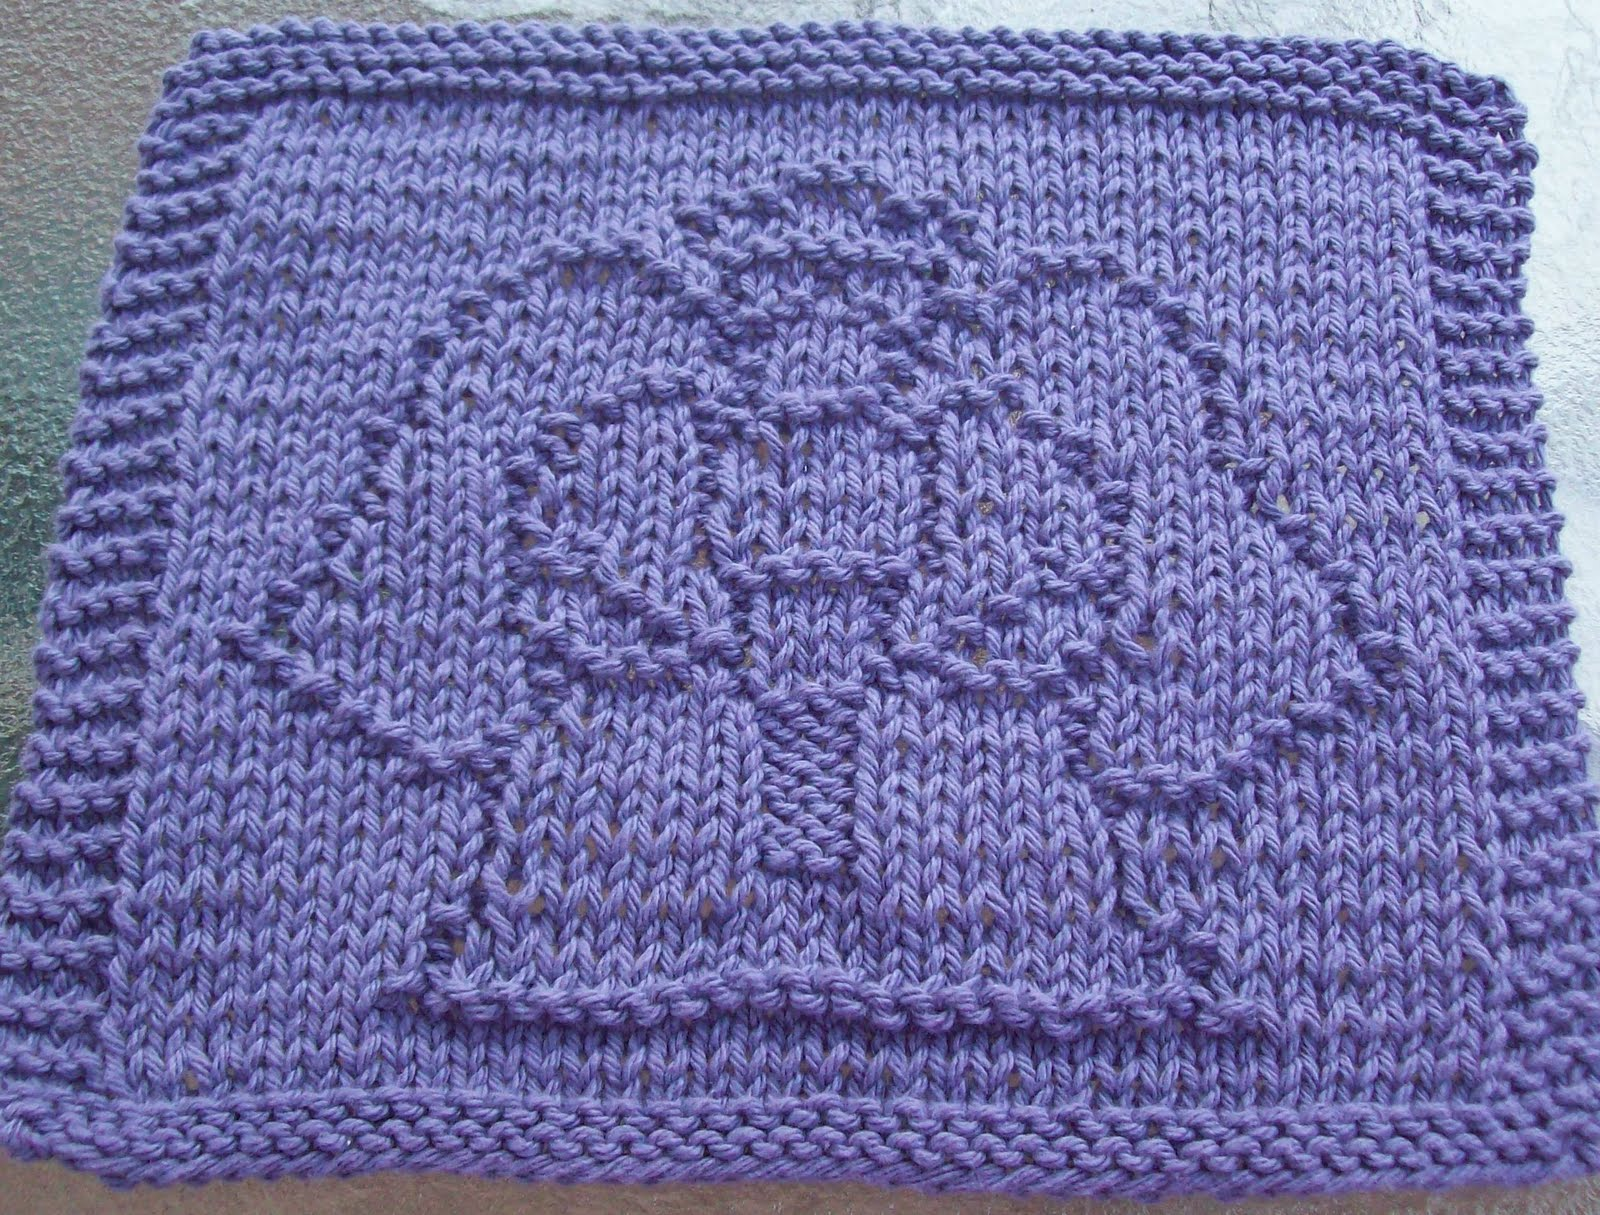 Knitted Dishcloth Patterns : DigKnitty Designs: Angel Knitting Knit Dishcloth Pattern